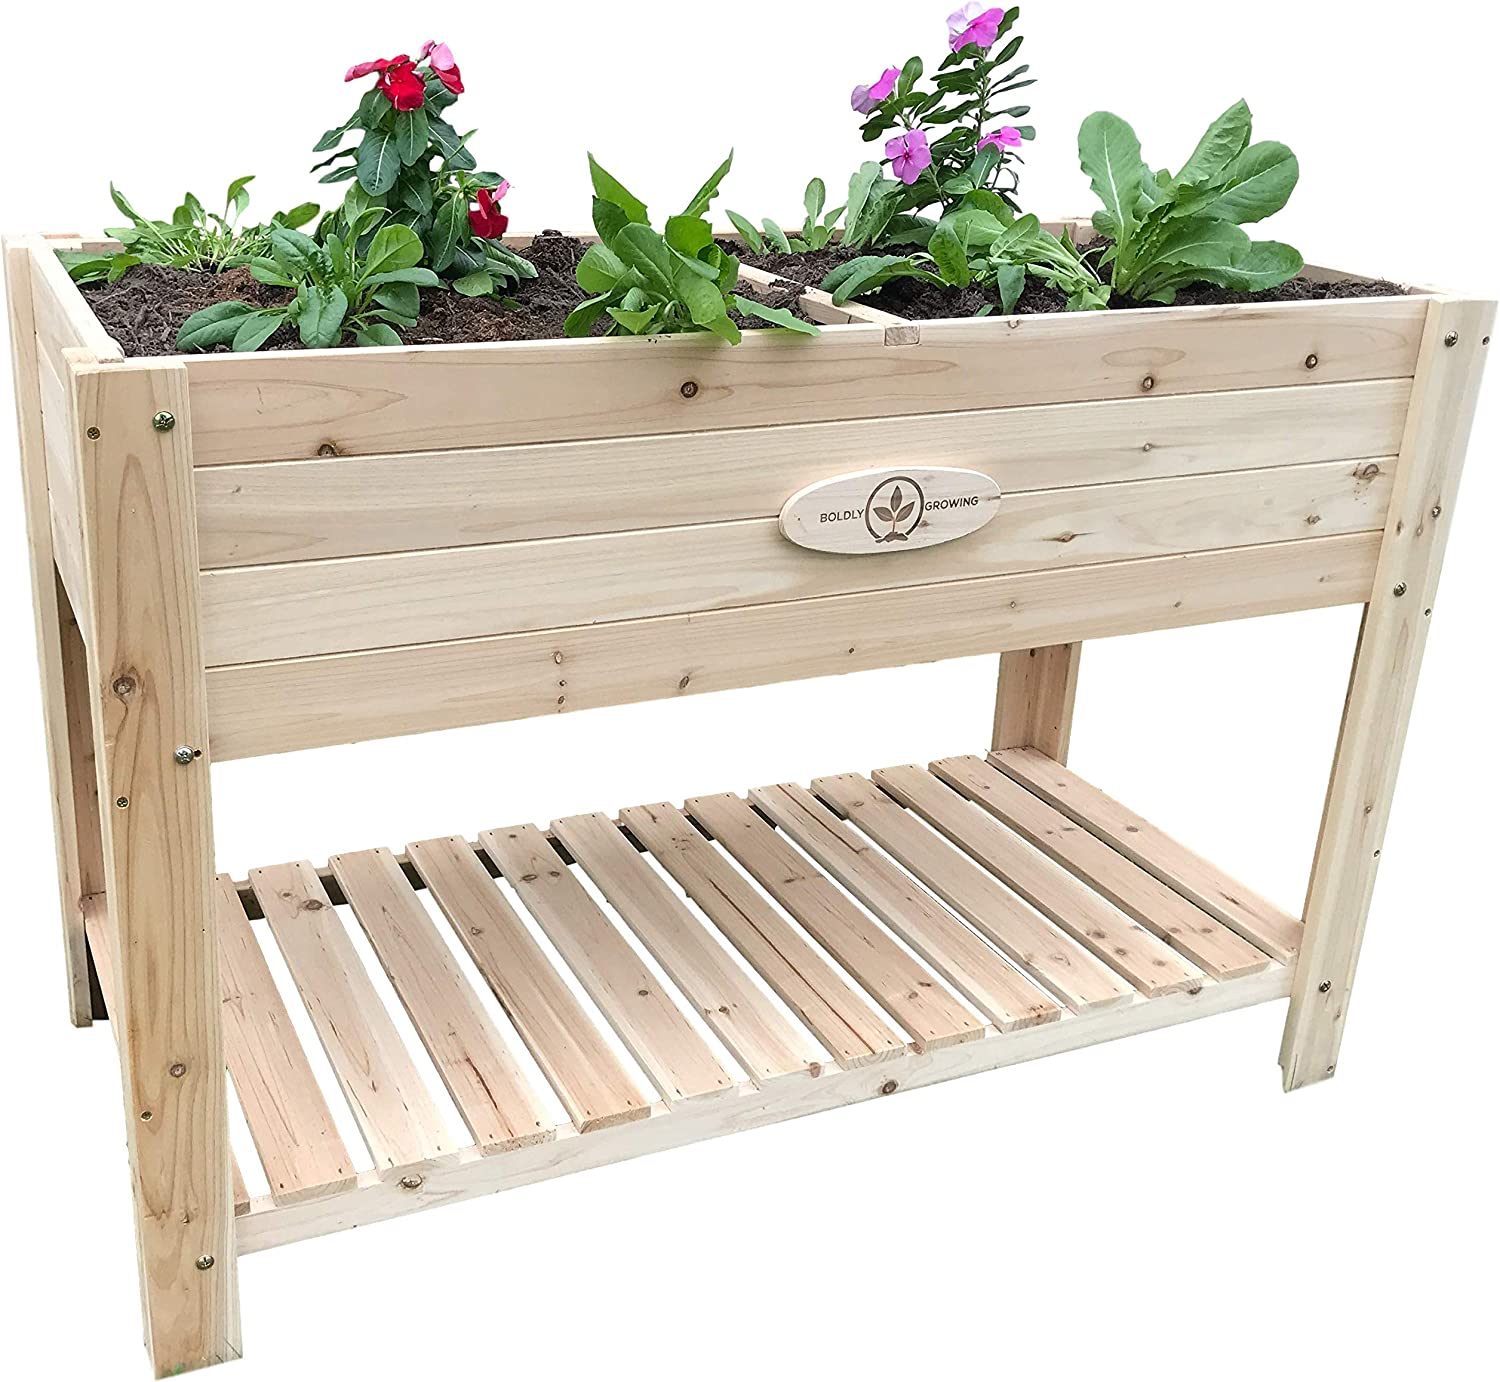 Boldly Growing Cedar Raised Planter Box with Legs – Elevated Wood Raised Garden Bed Kit – Grow Herbs and Vegetables Outdoors – Naturally Rot-Resistant - Unmatched Strength Lasts Years (4x2)